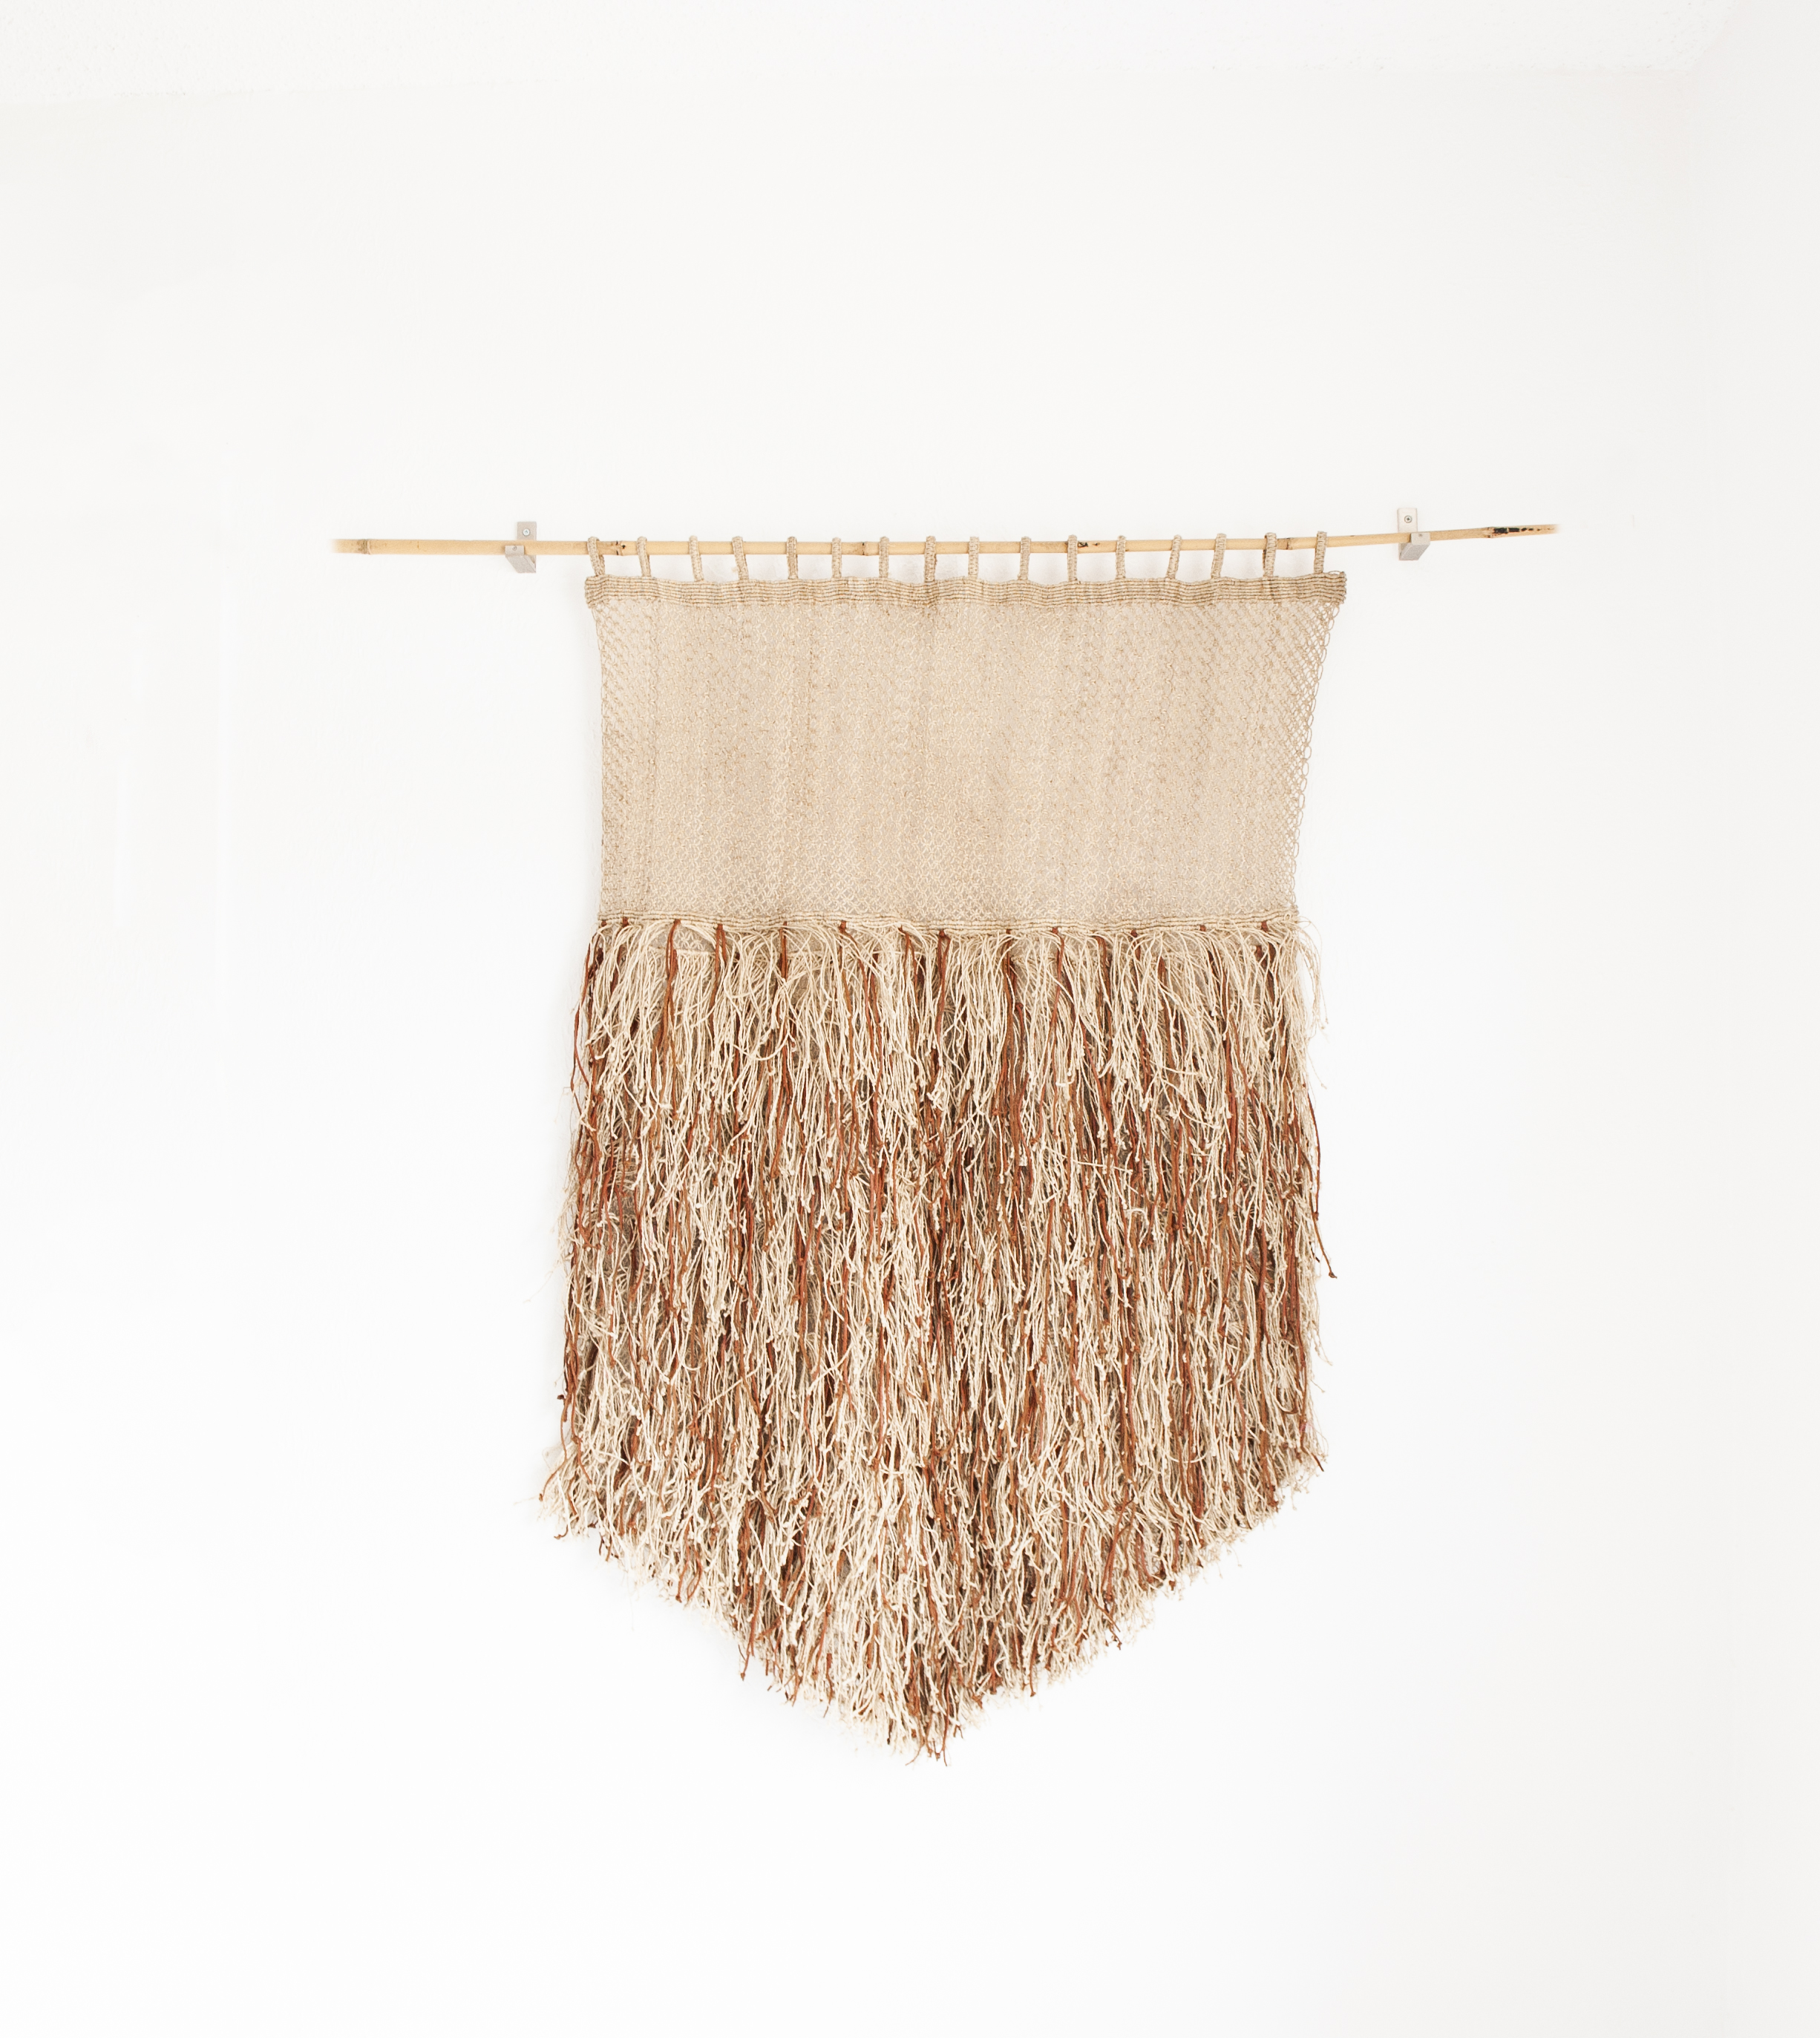 "Fringe & leather wall hanging dimensions: 57"" high x 40"" $350/20% off"